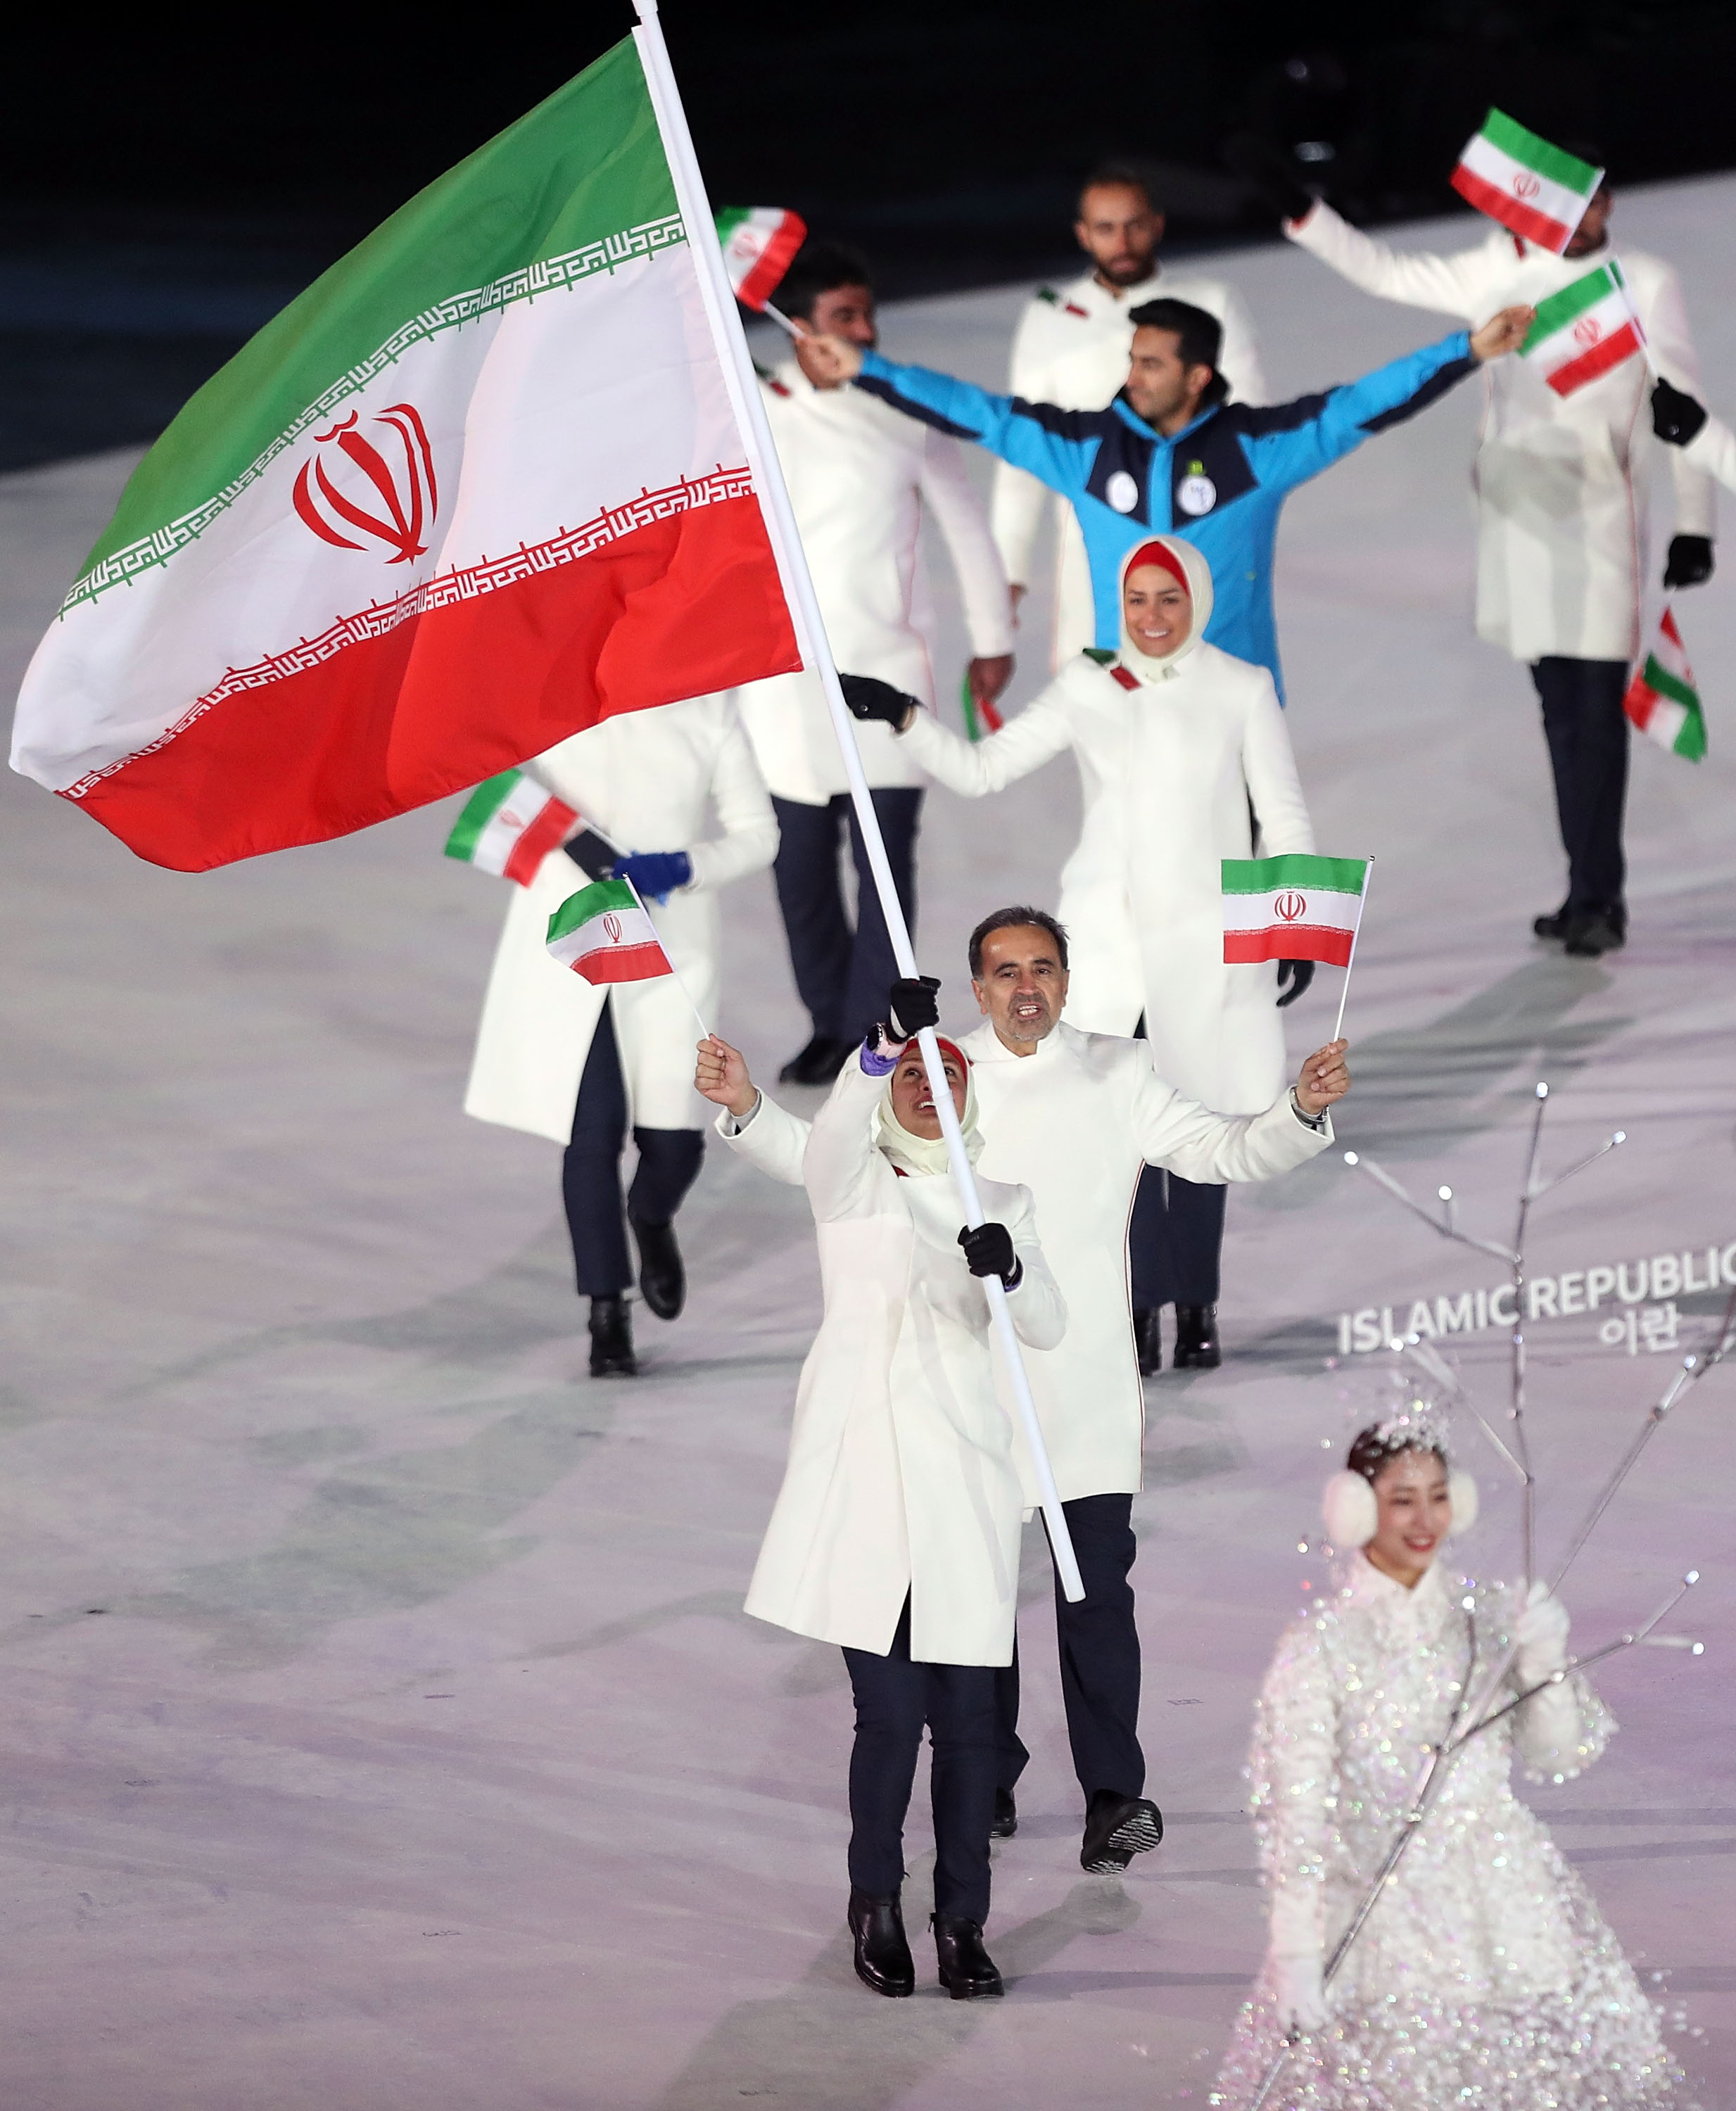 PYEONGCHANG-GUN, SOUTH KOREA - FEBRUARY 09:  Samaneh Beyrami Baher Flag bearer of Islamic Republic of Iran during the Opening Ceremony of the PyeongChang 2018 Winter Olympic Games at PyeongChang Olympic Stadium on February 9, 2018 in Pyeongchang-gun, South Korea.   fee liable image, copyright © ATP  Amin JAMALI  XXIII. OLYMPIC WINTER GAMES PYEONGCHANG 2018: OPENING CEREMONY,  PyeongChang, Korea, Winter Olympics; PyeongChang Olympic Stadium, on 9. February 2018, fee liable image, copyright © ATP / Amin JAMALI  Featuring: Samaneh Beyrami Baher Flag bearer of Islamic Republic of Iran Where: Pyeongchang, Gangwon Province, South Korea When: 09 Feb 2018 Credit: ATP/WENN.com  **Not available for publication in Germany or France. No Contact Music.**